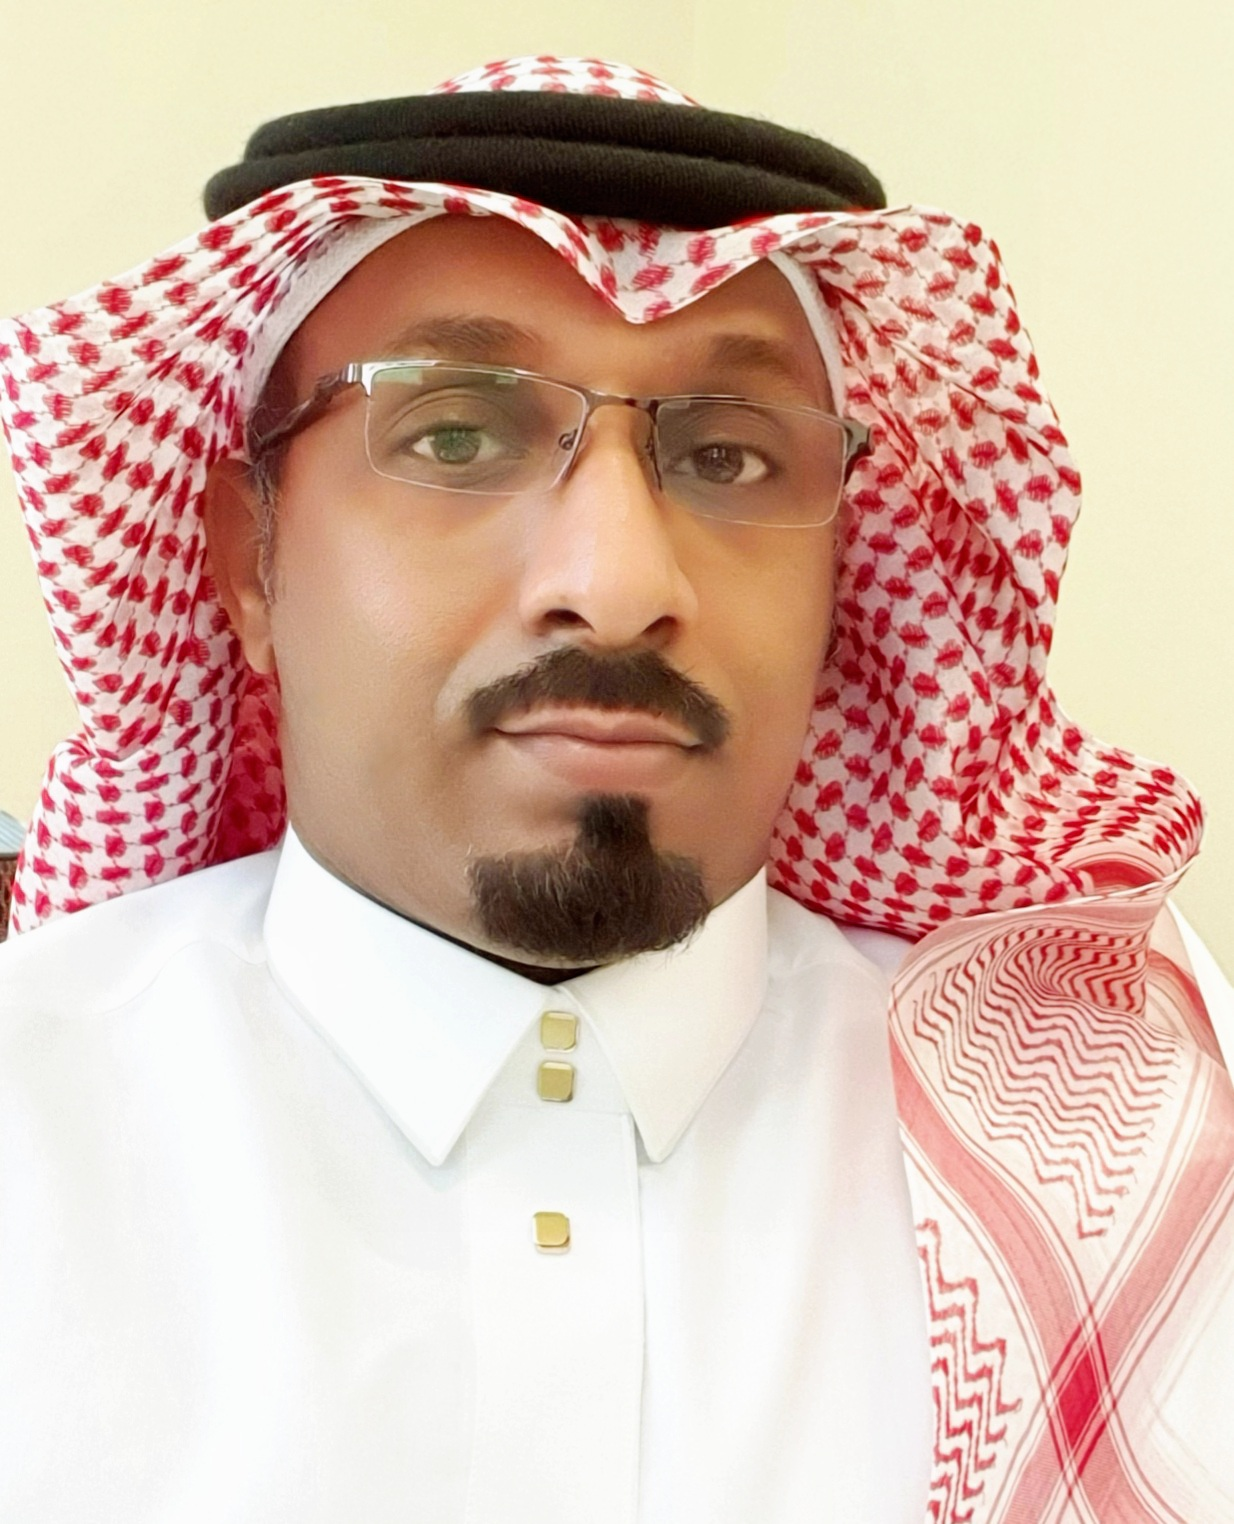 Mr. Ahmed Al Sheraimi Profile Image